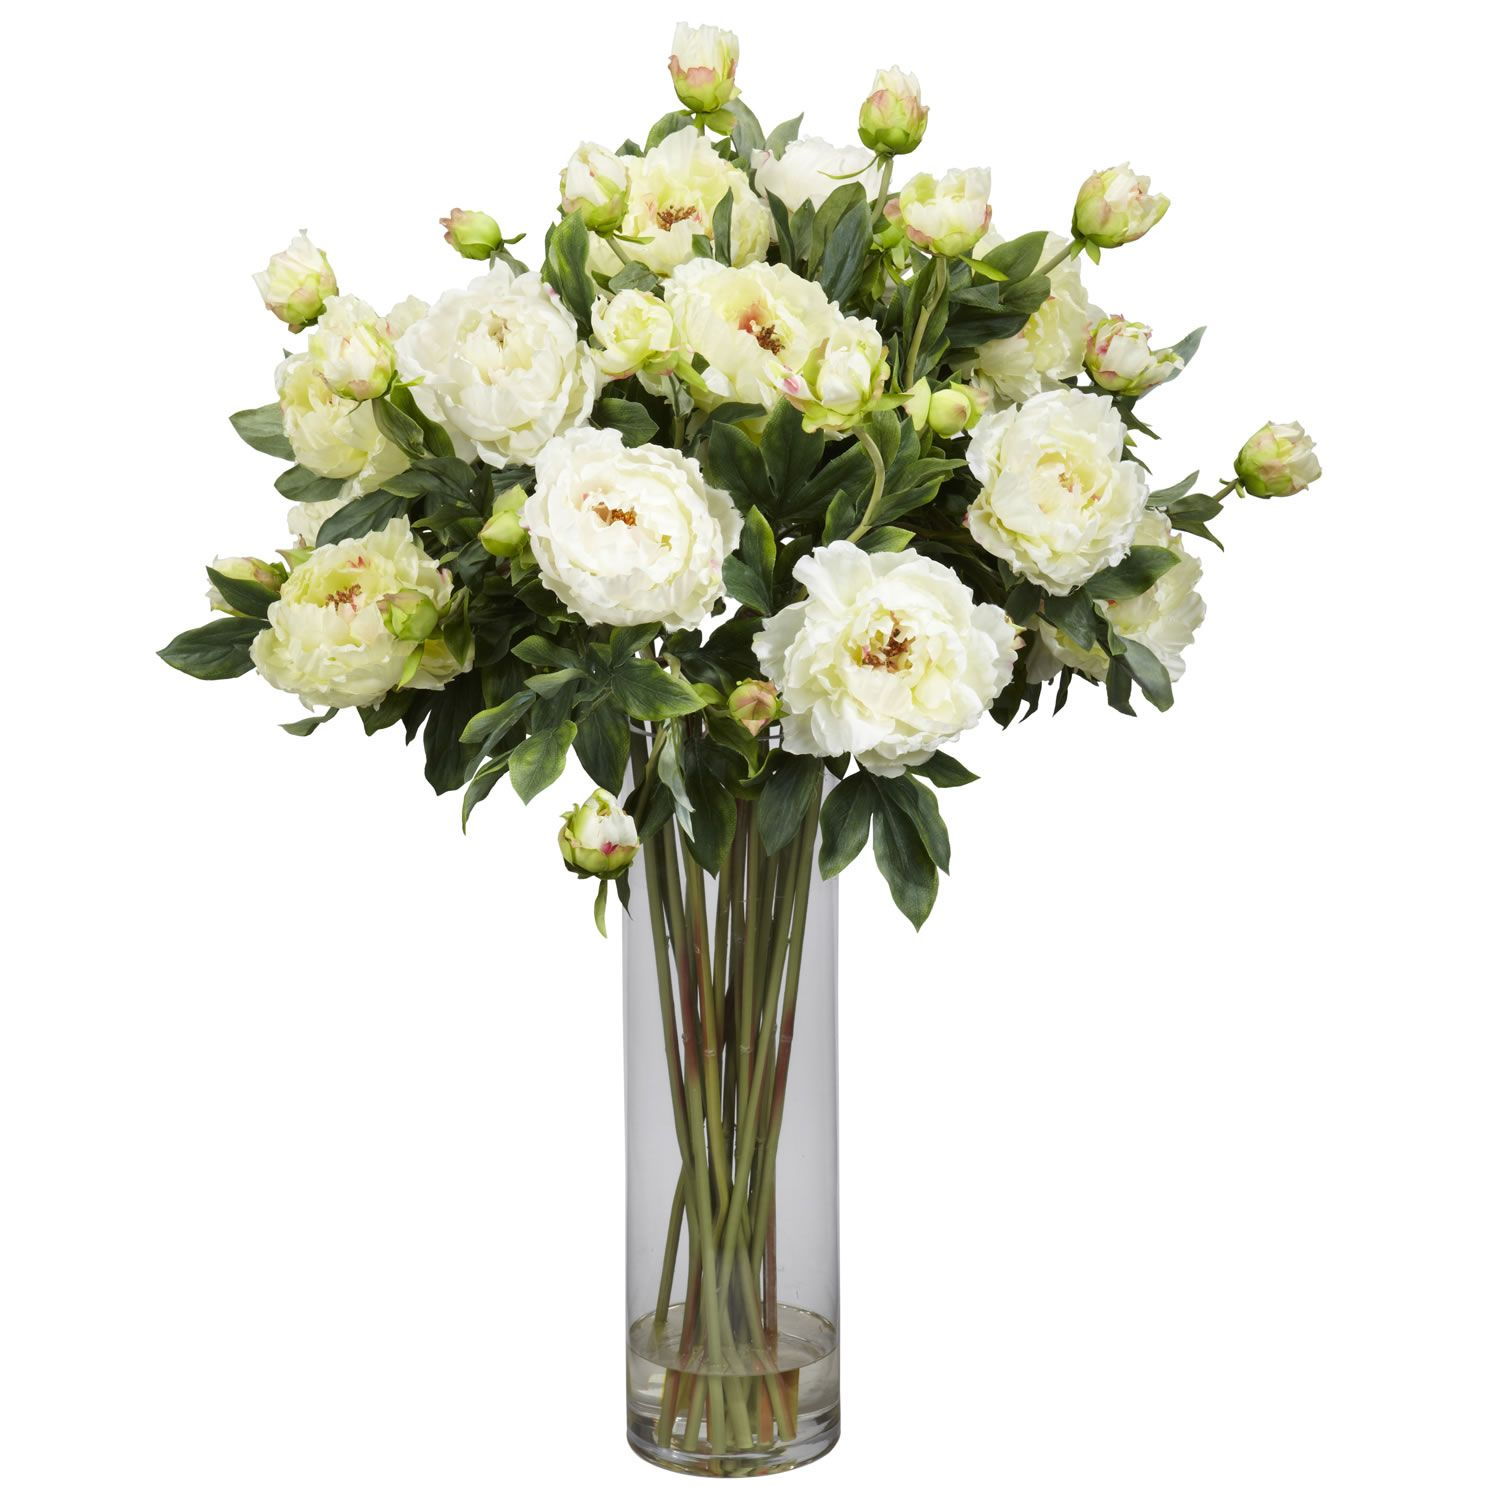 Fake Floral Arrangements For Your Table Centerpiece White